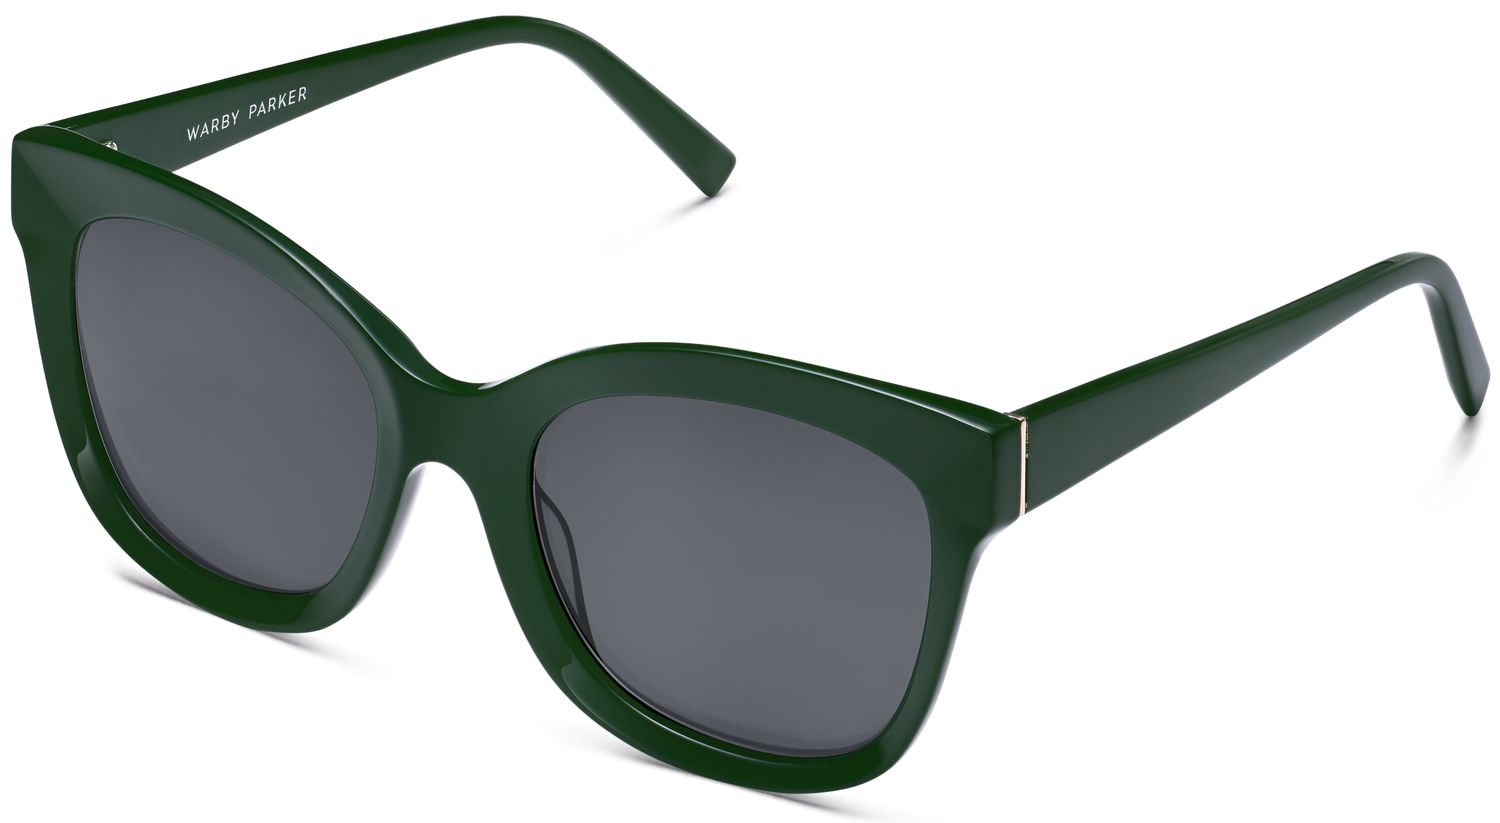 Angle View Image of Ada Sunglasses Collection, by Warby Parker Brand, in Forest Green Color